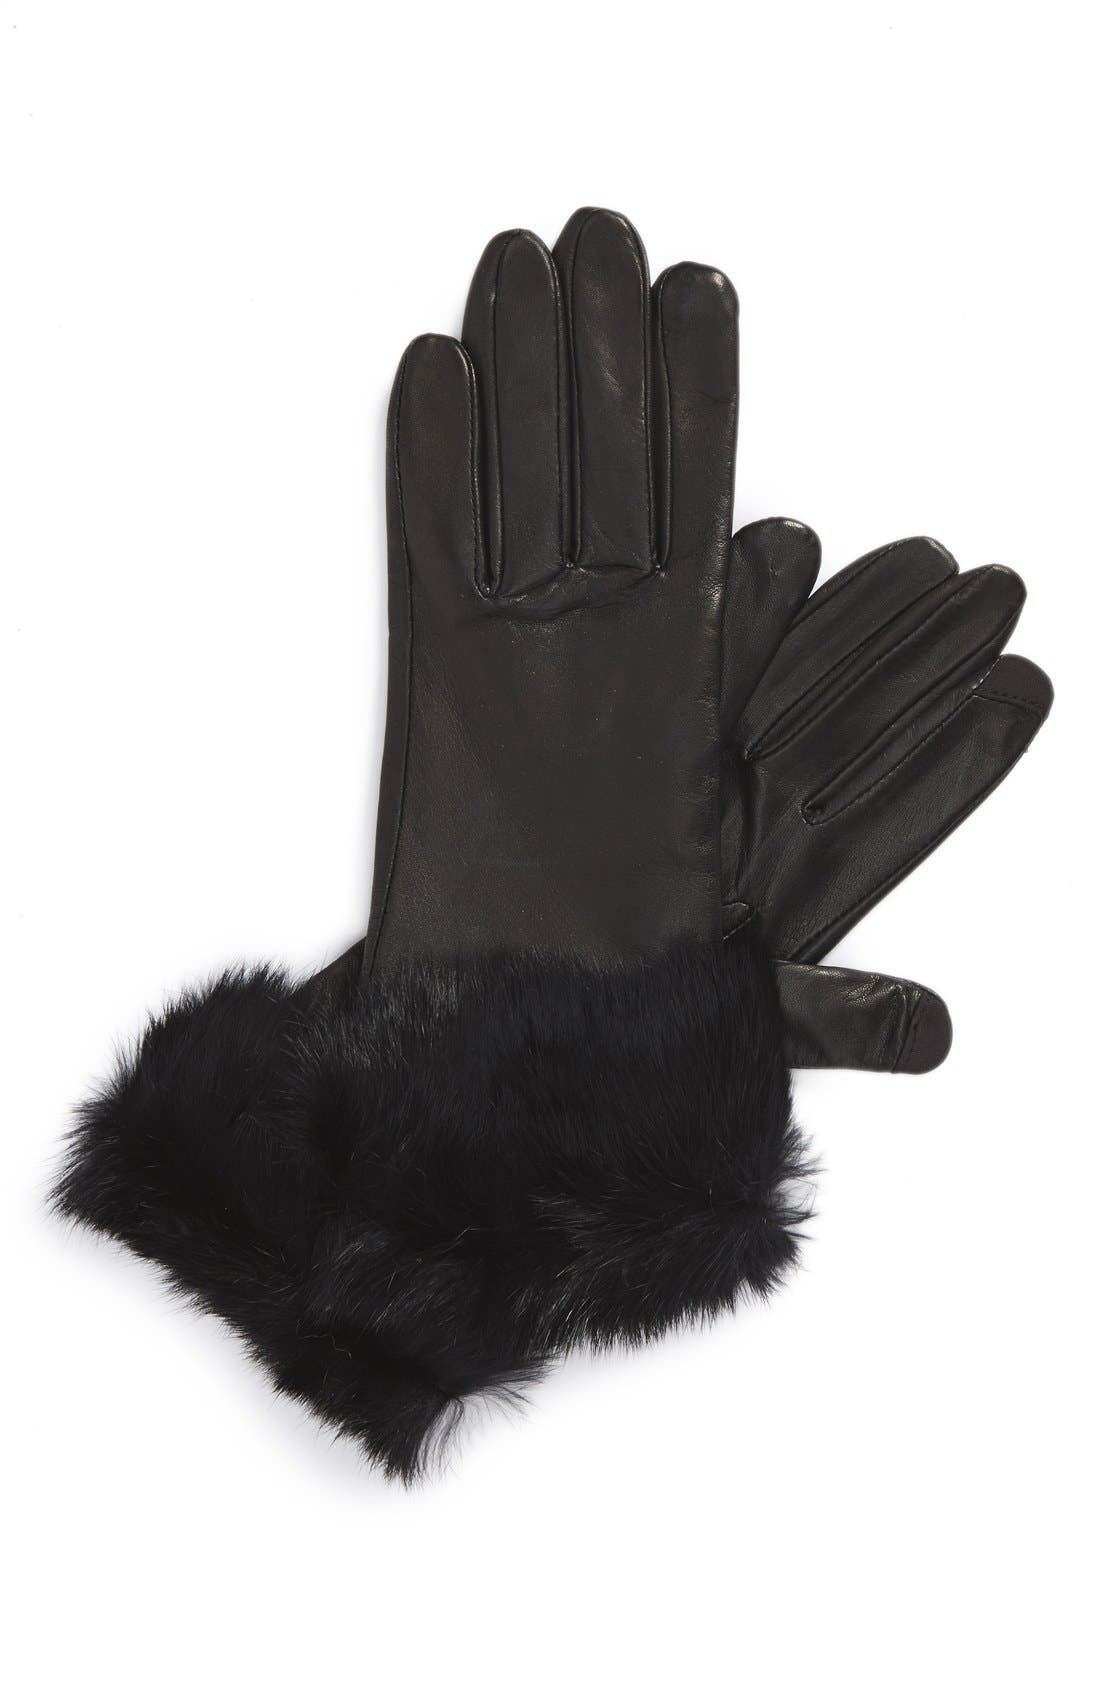 Main Image - Fownes Brothers Leather & Genuine Rabbit Hair Tech Gloves